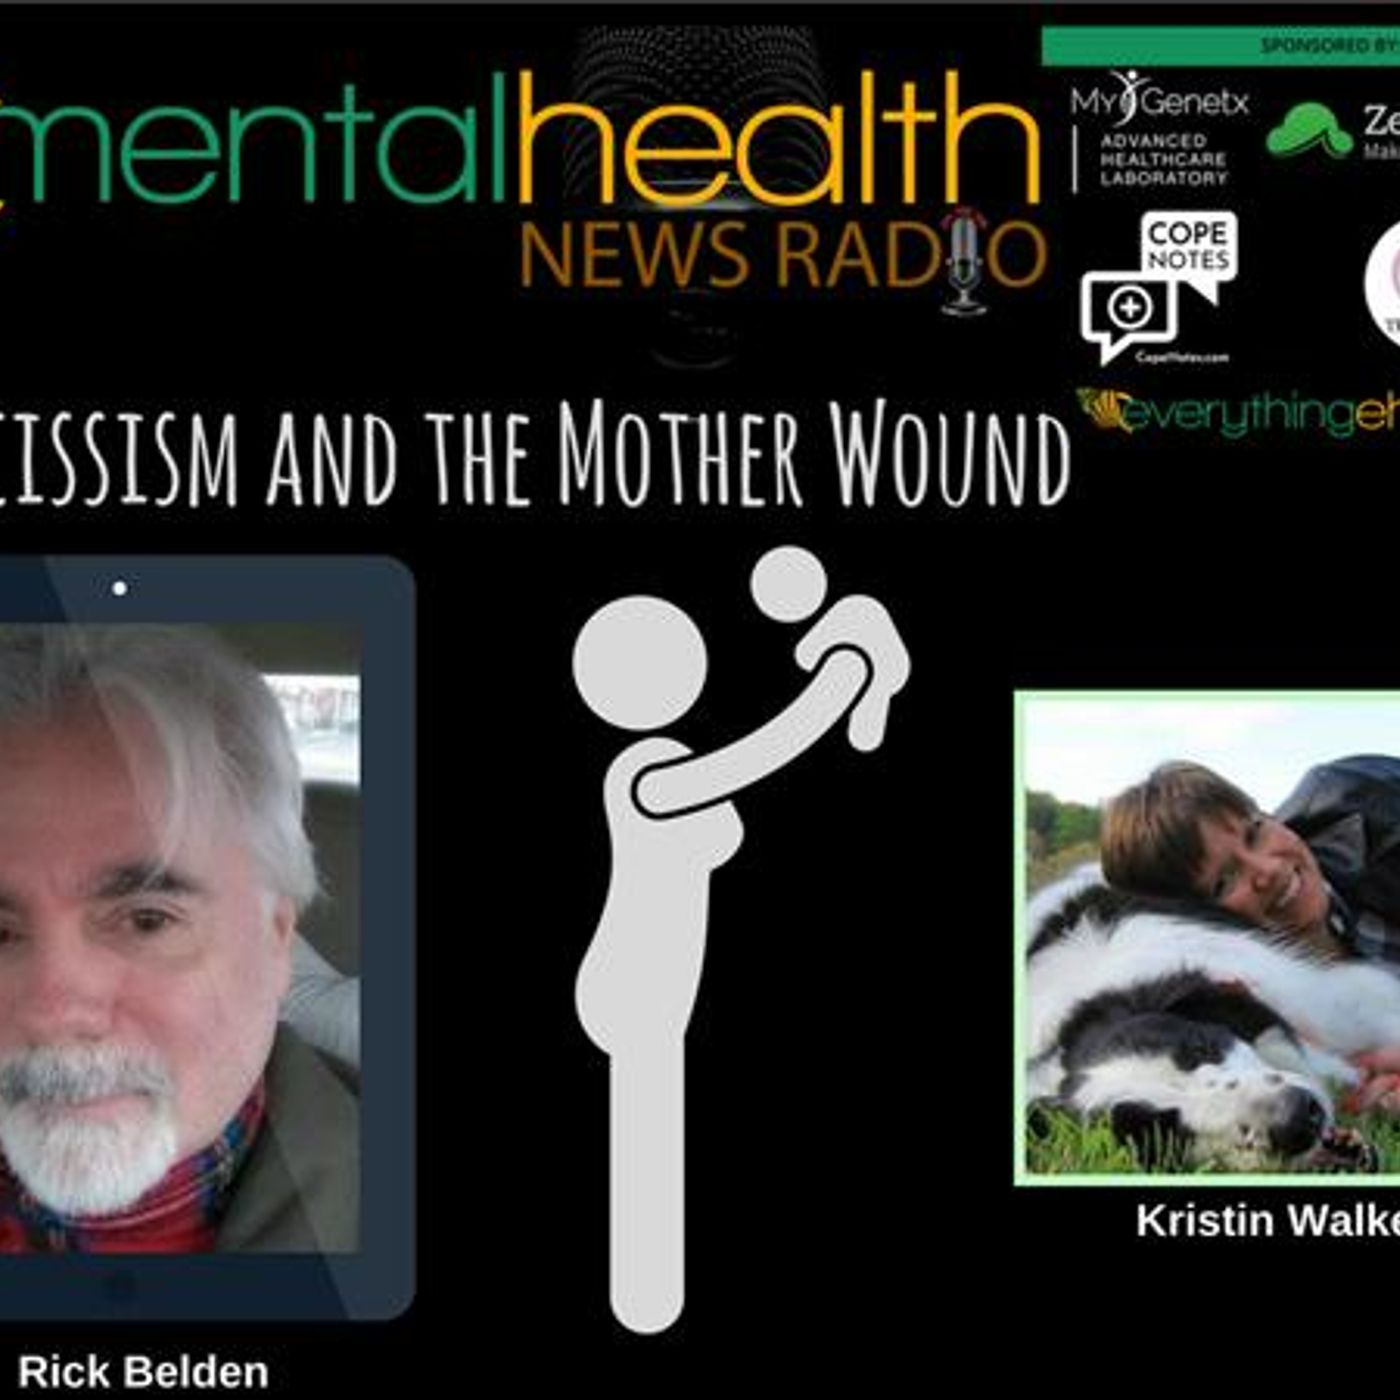 Mental Health News Radio - Narcissism and the Mother Wound with Rick Belden